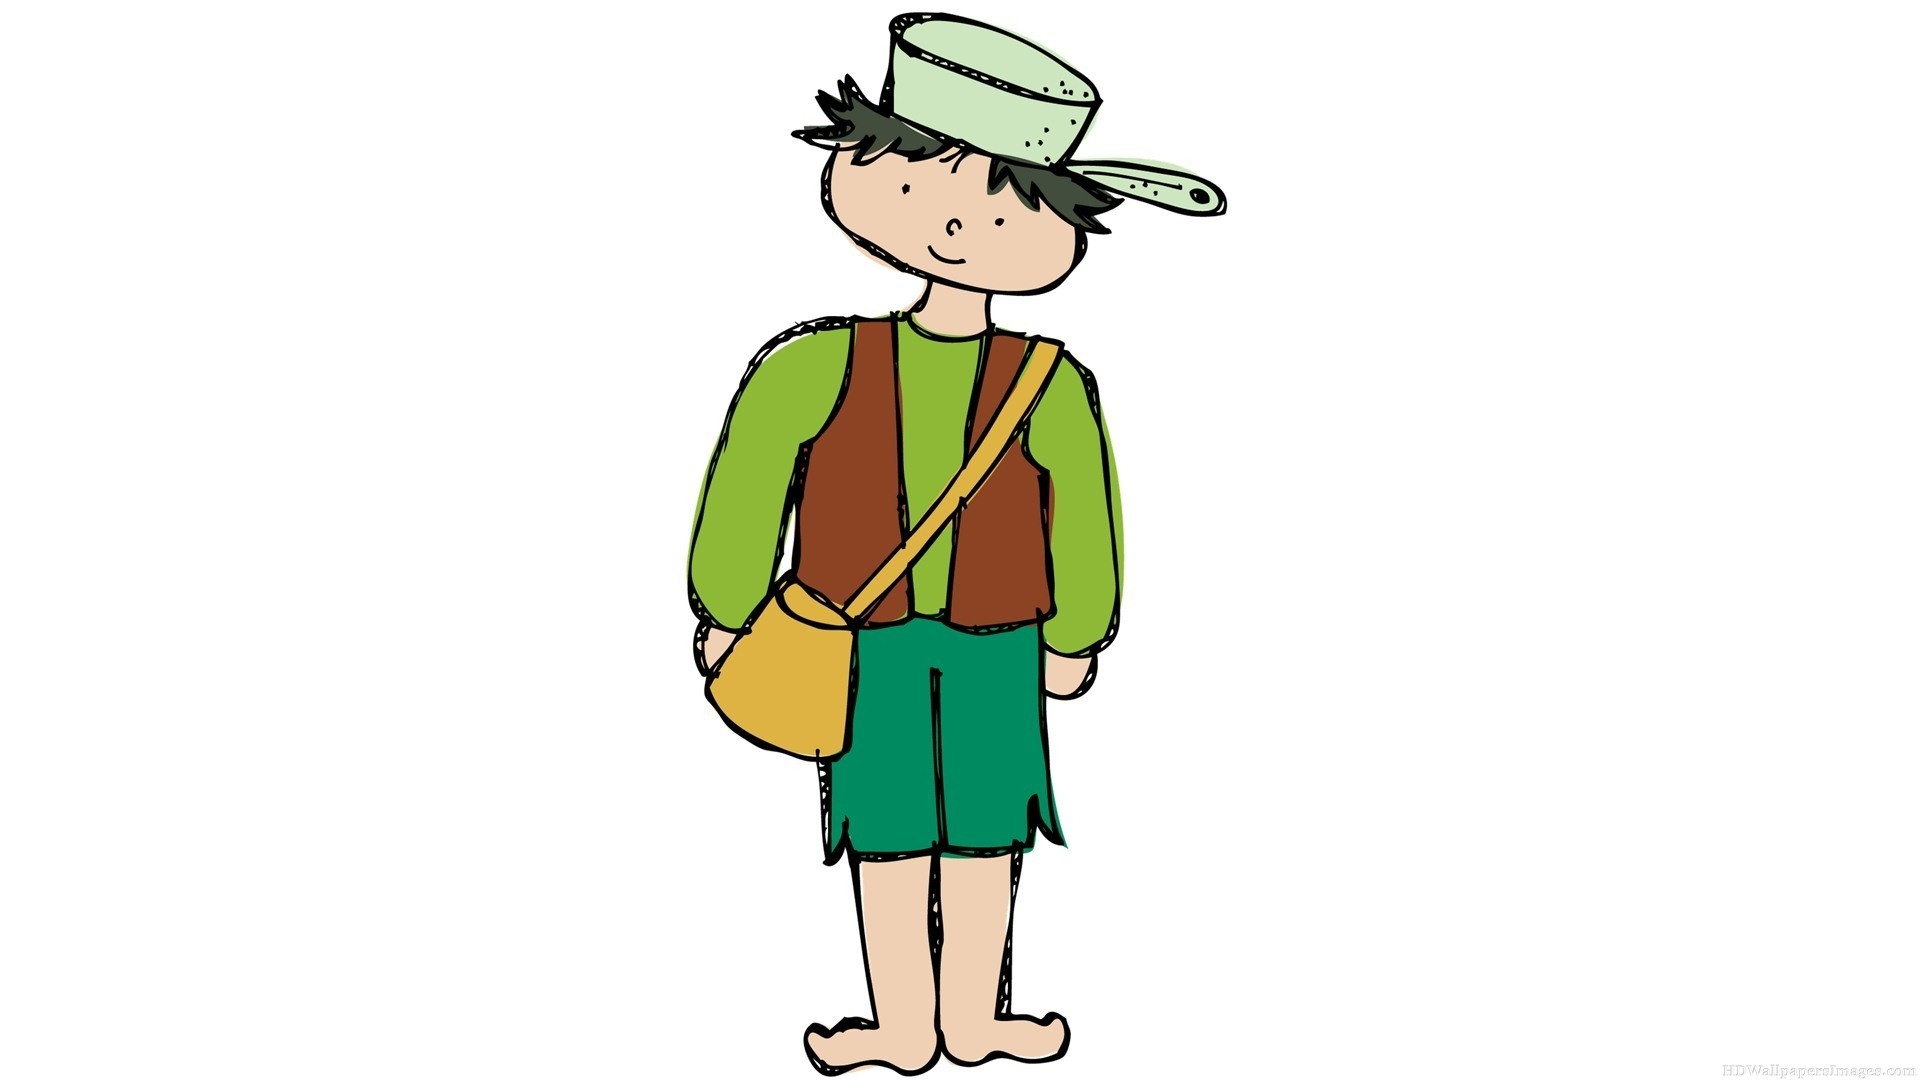 clip art of johnny appleseed clipart best johnny appleseed clipart free johnny appleseed clip art apples